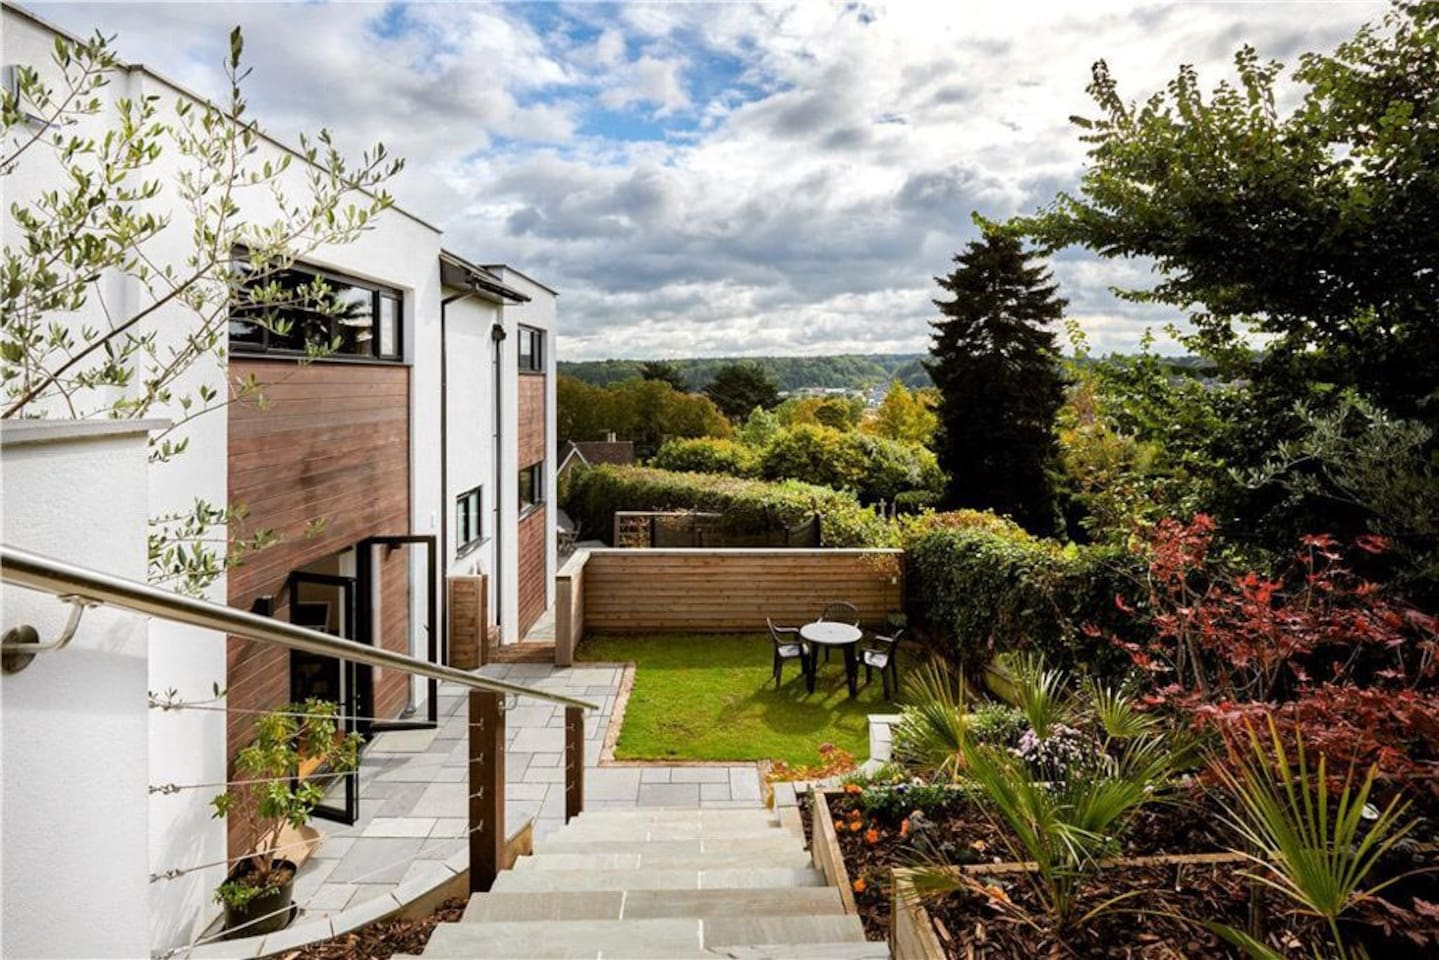 Dramatic views over the Surrey Hills from your private garden